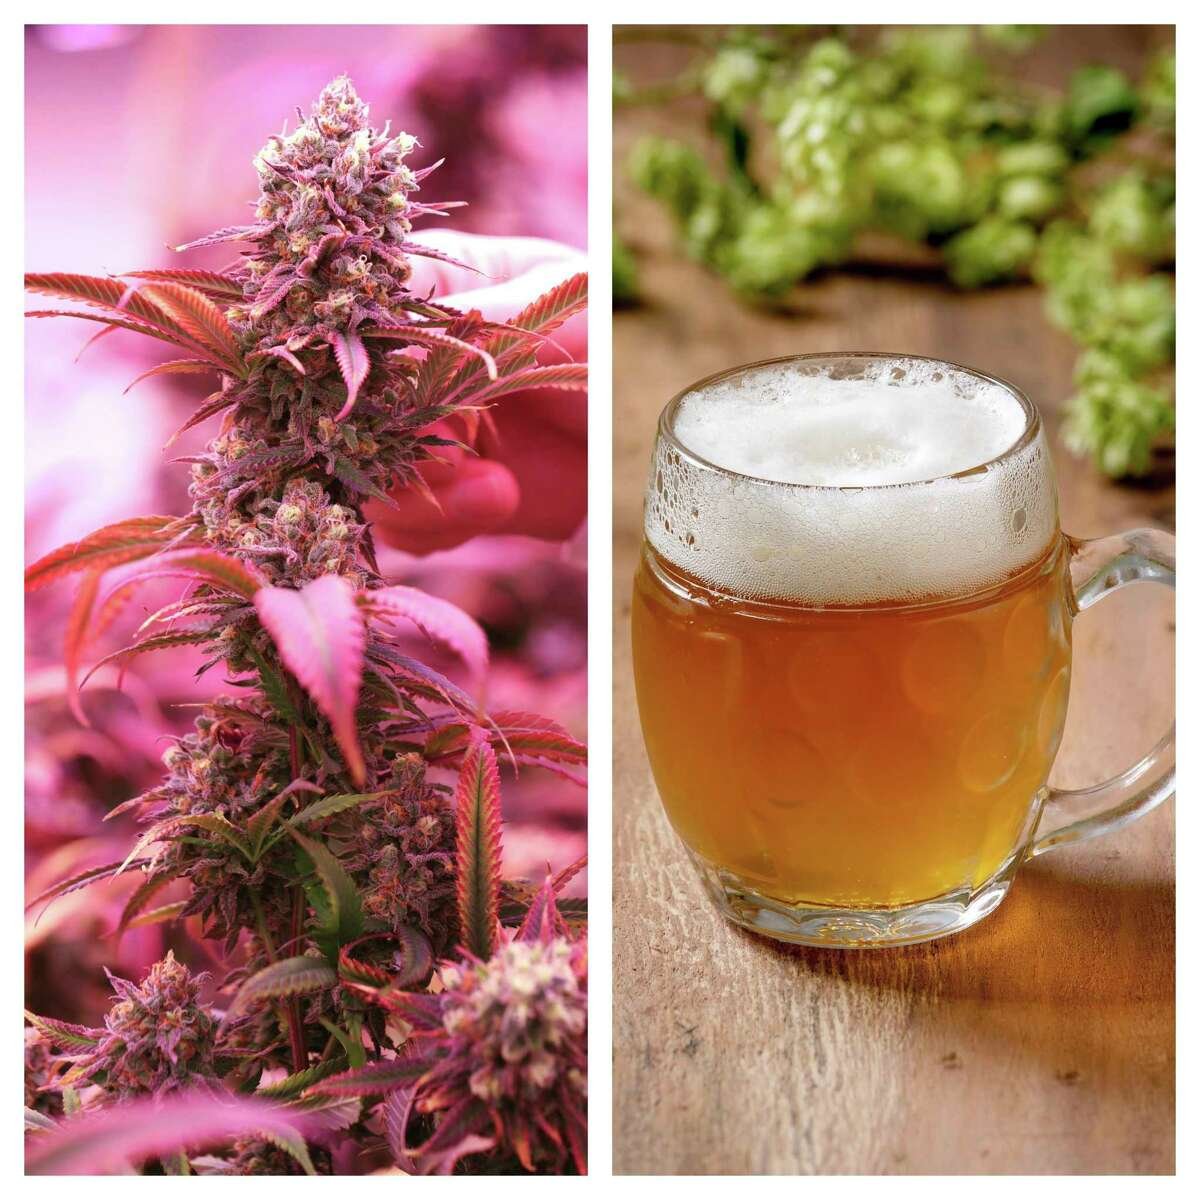 A marijuana bud (left) is pictured next to a mug of beer. (Photo courtesy of Getty Images)